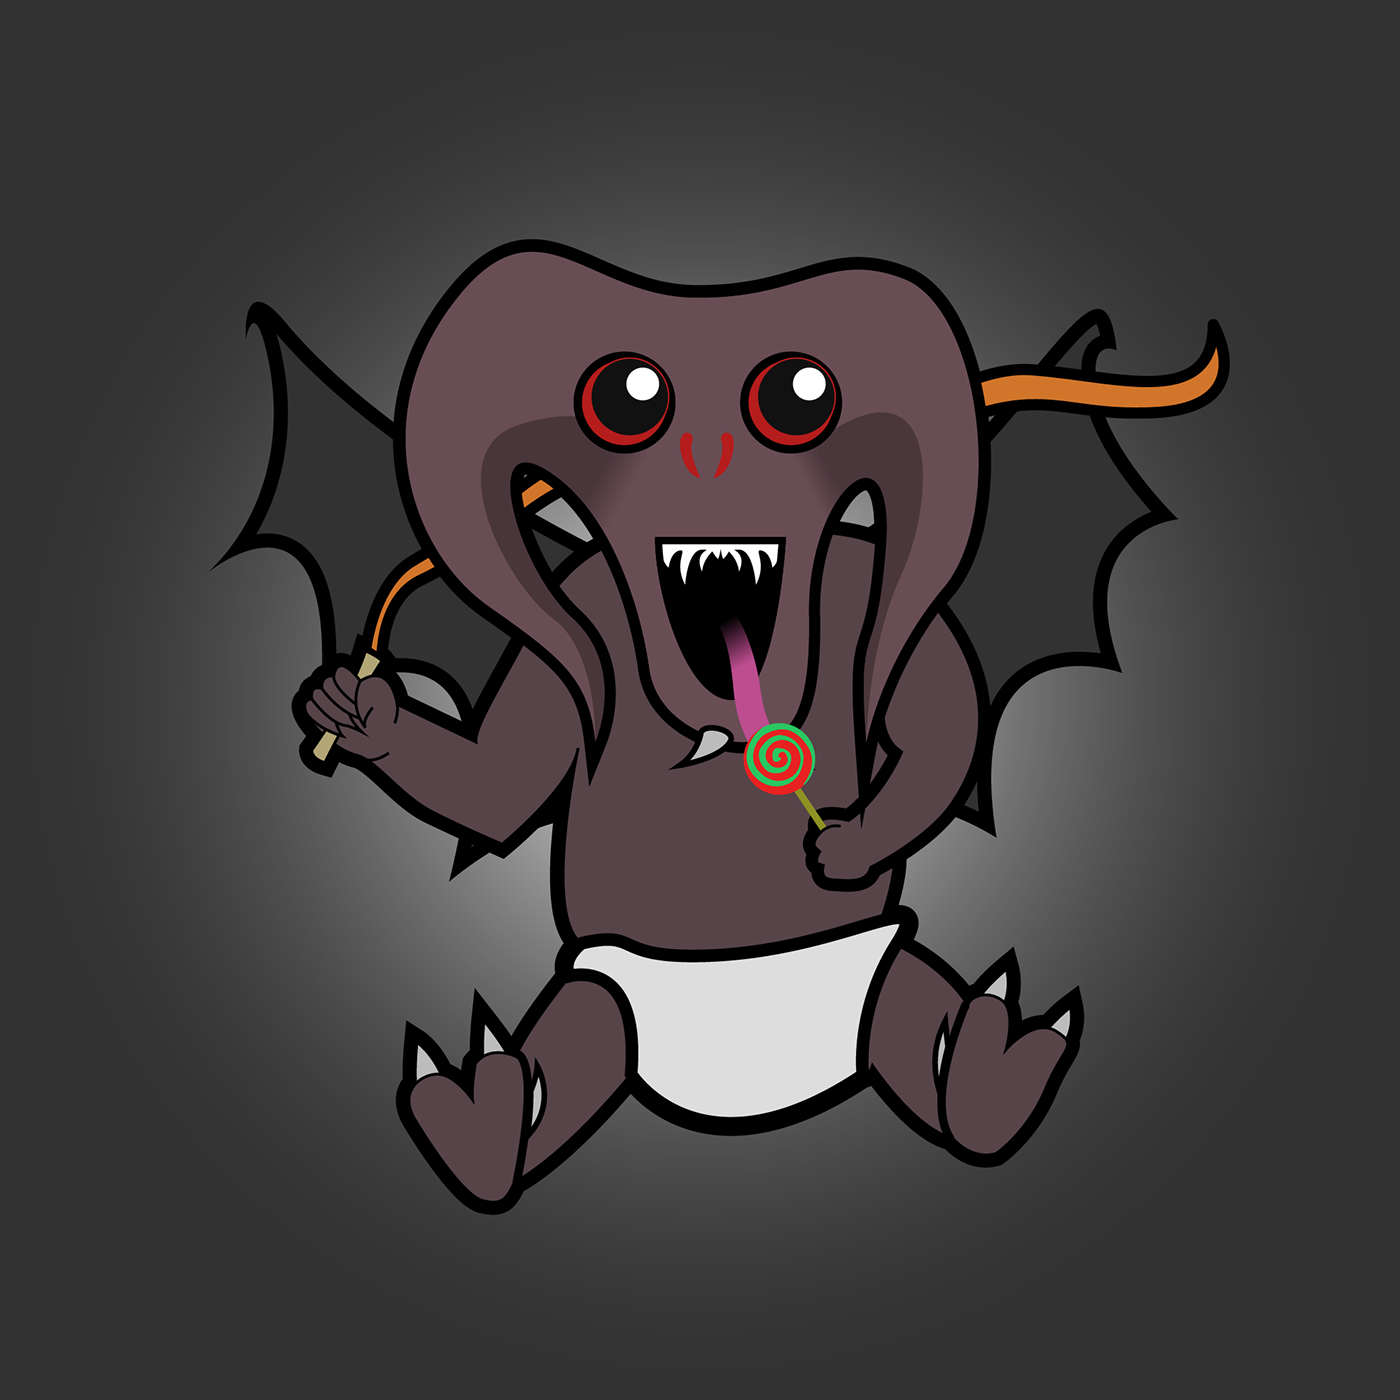 pop culture mythology monsters baby fantasy cute Movies